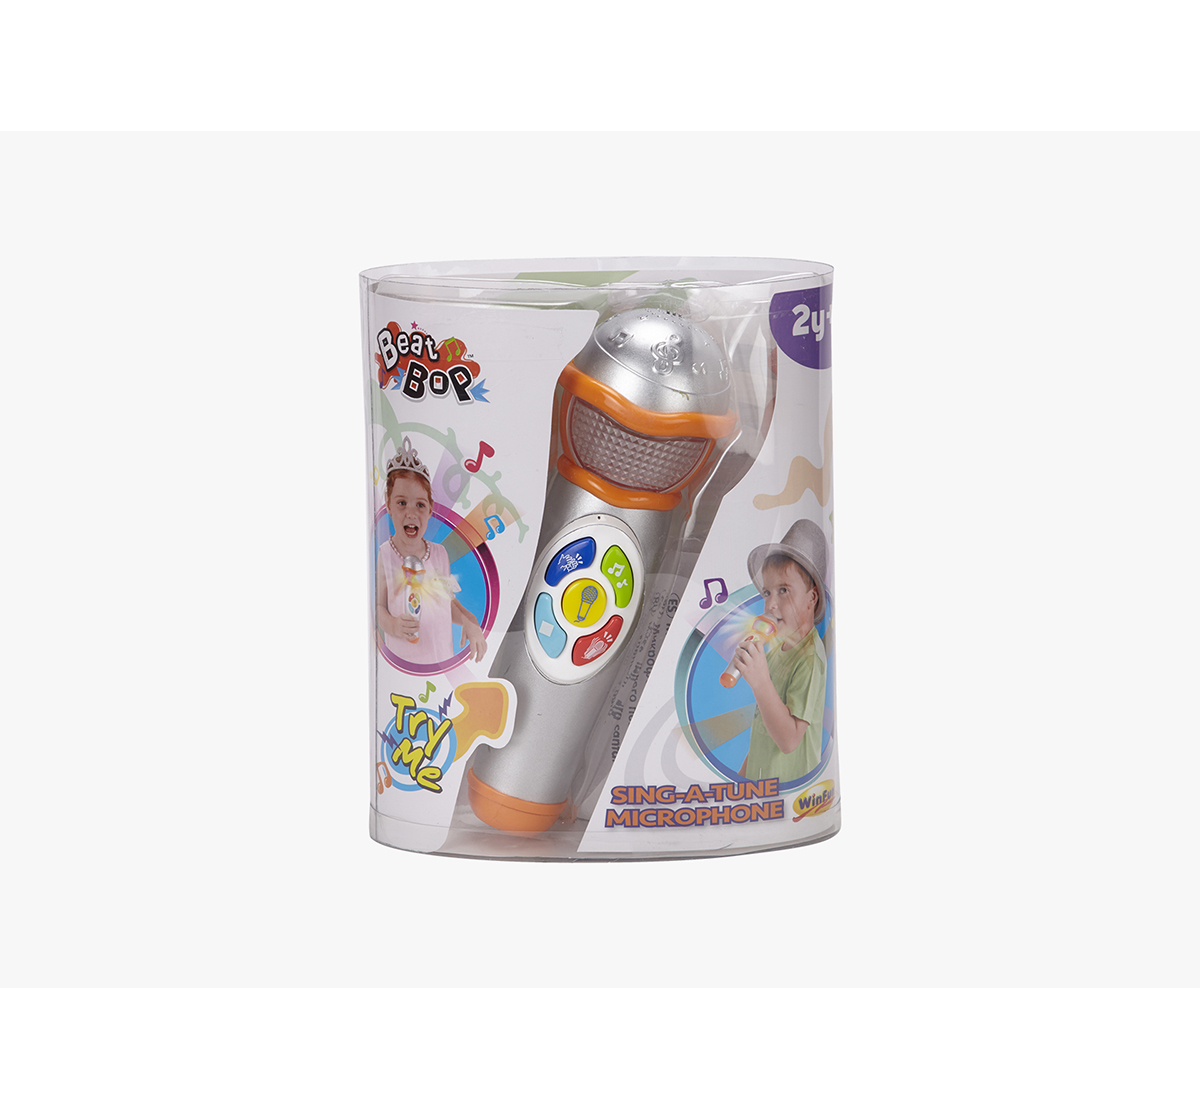 WinFun | Winfun Sing-A-Tune Microphone Learning Toys for Kids age 24M+ (Silver)